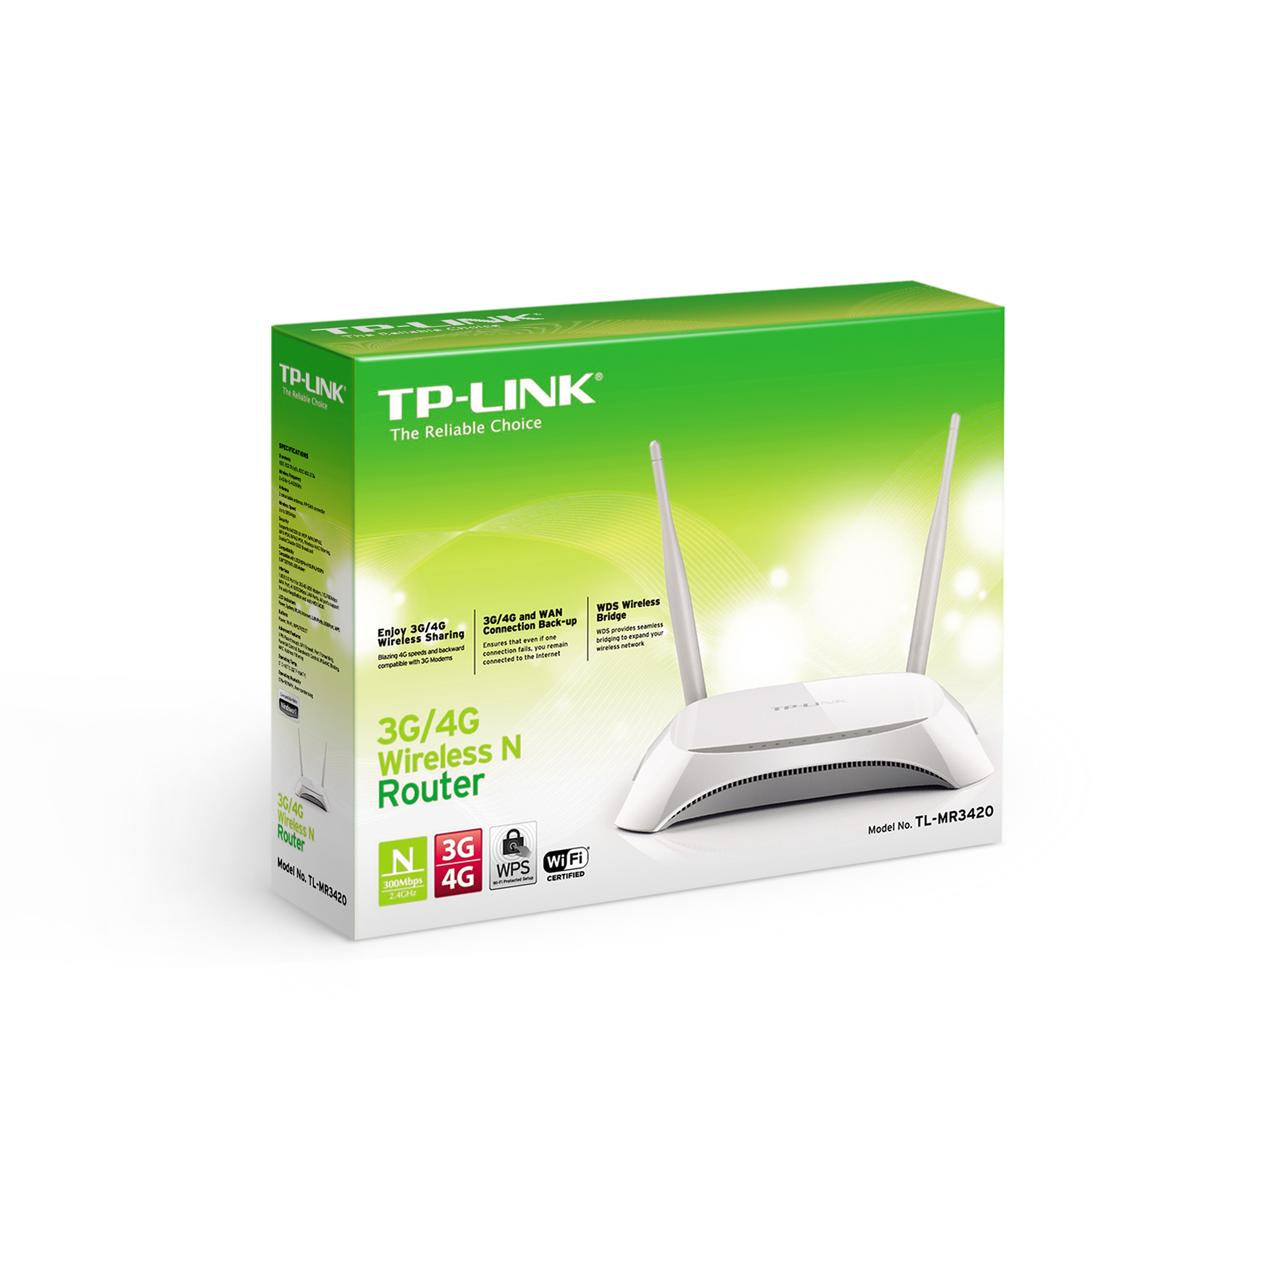 Tp Link 3g 4g Wireless N Router Tl Mr3420 Elevenia Samsung Galaxy J2 Prime Garansi Sein New